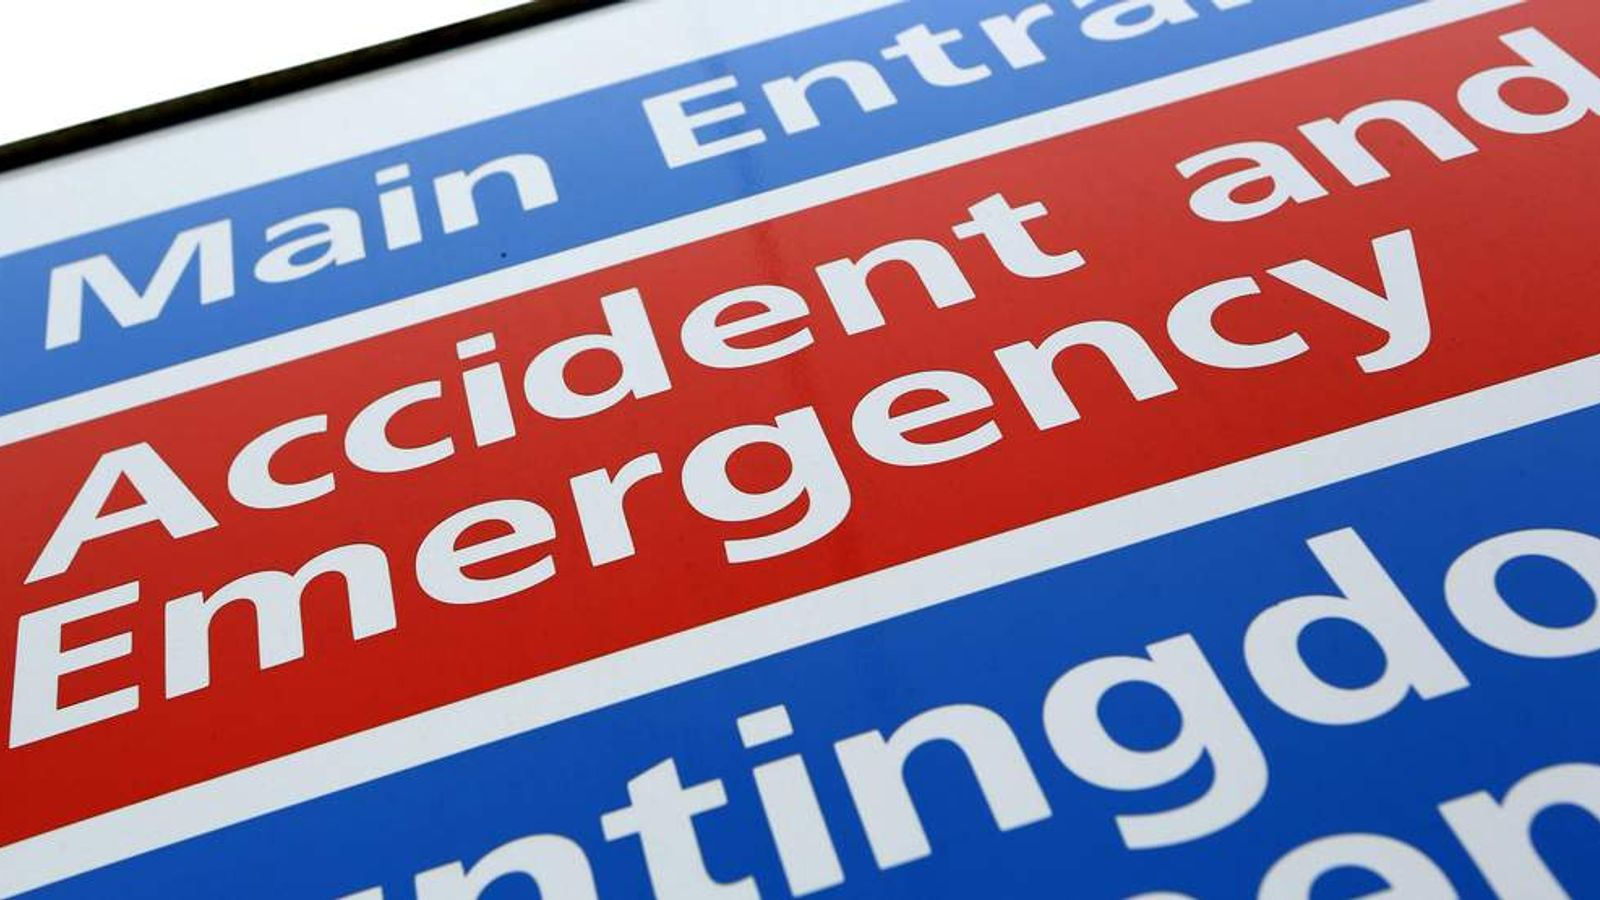 Accident And Emergency A&E Department